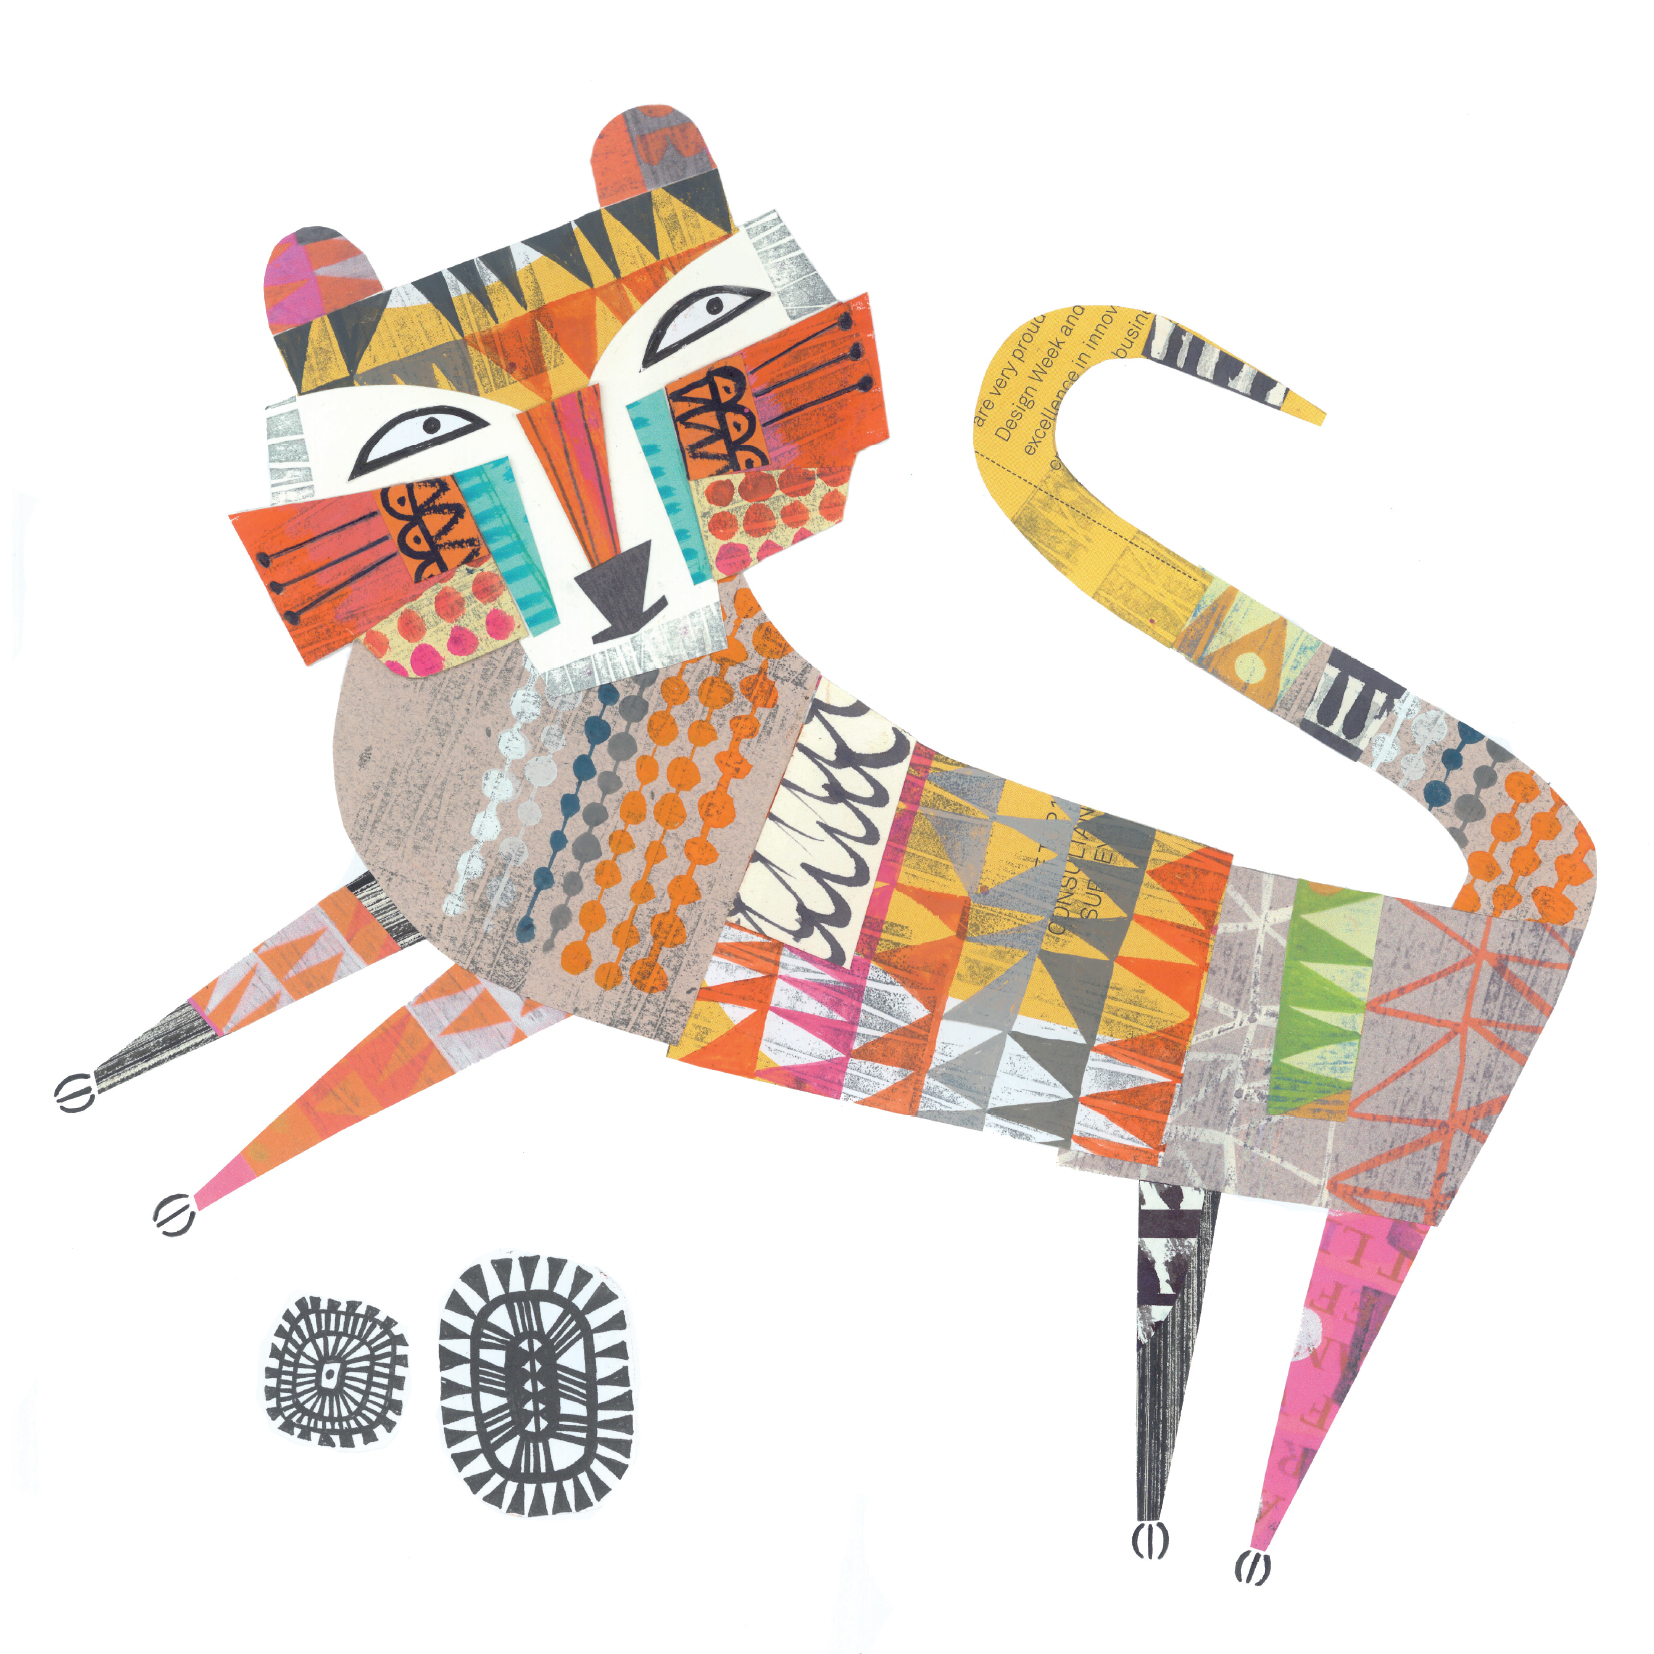 dancing tiger   SHOP    mixed media collage, available as a giclee print